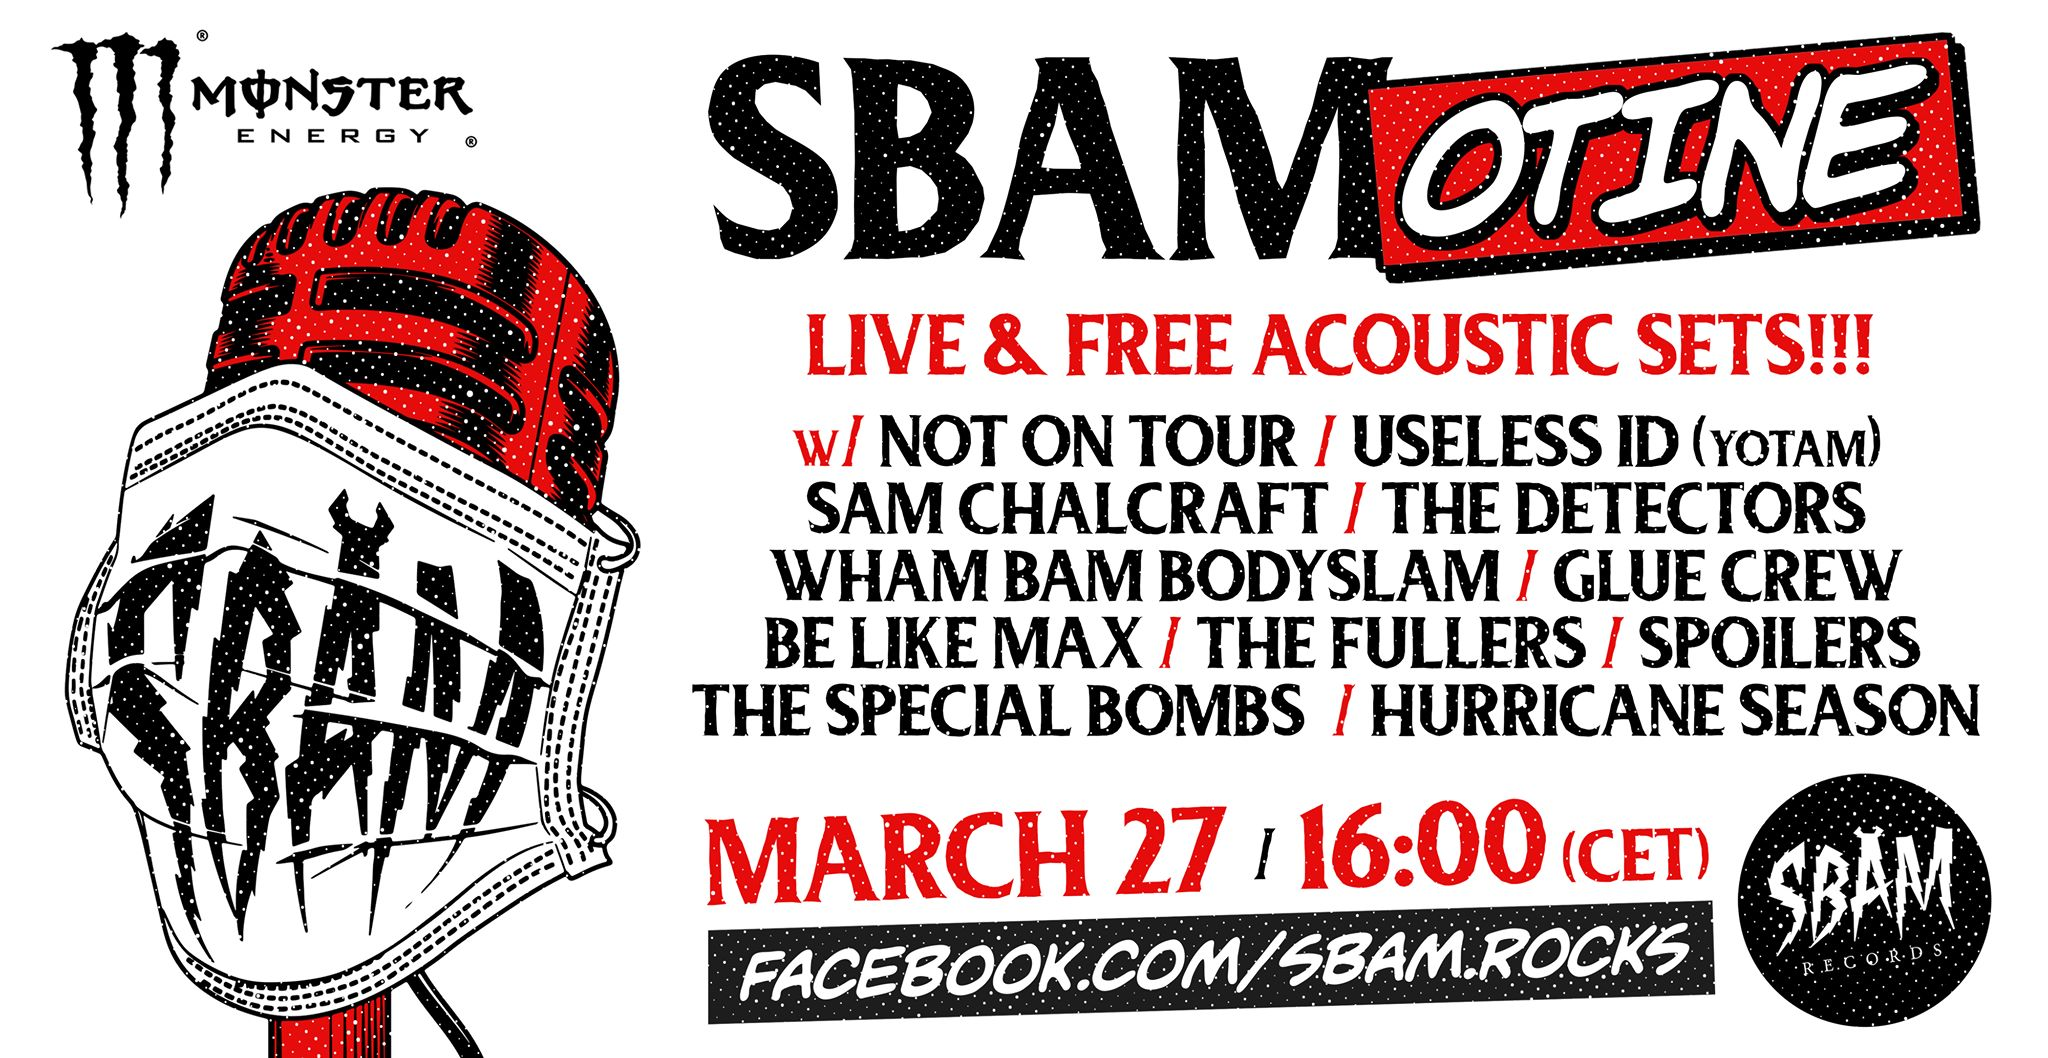 SBAMotine (Live & Free Acoustic Sets)